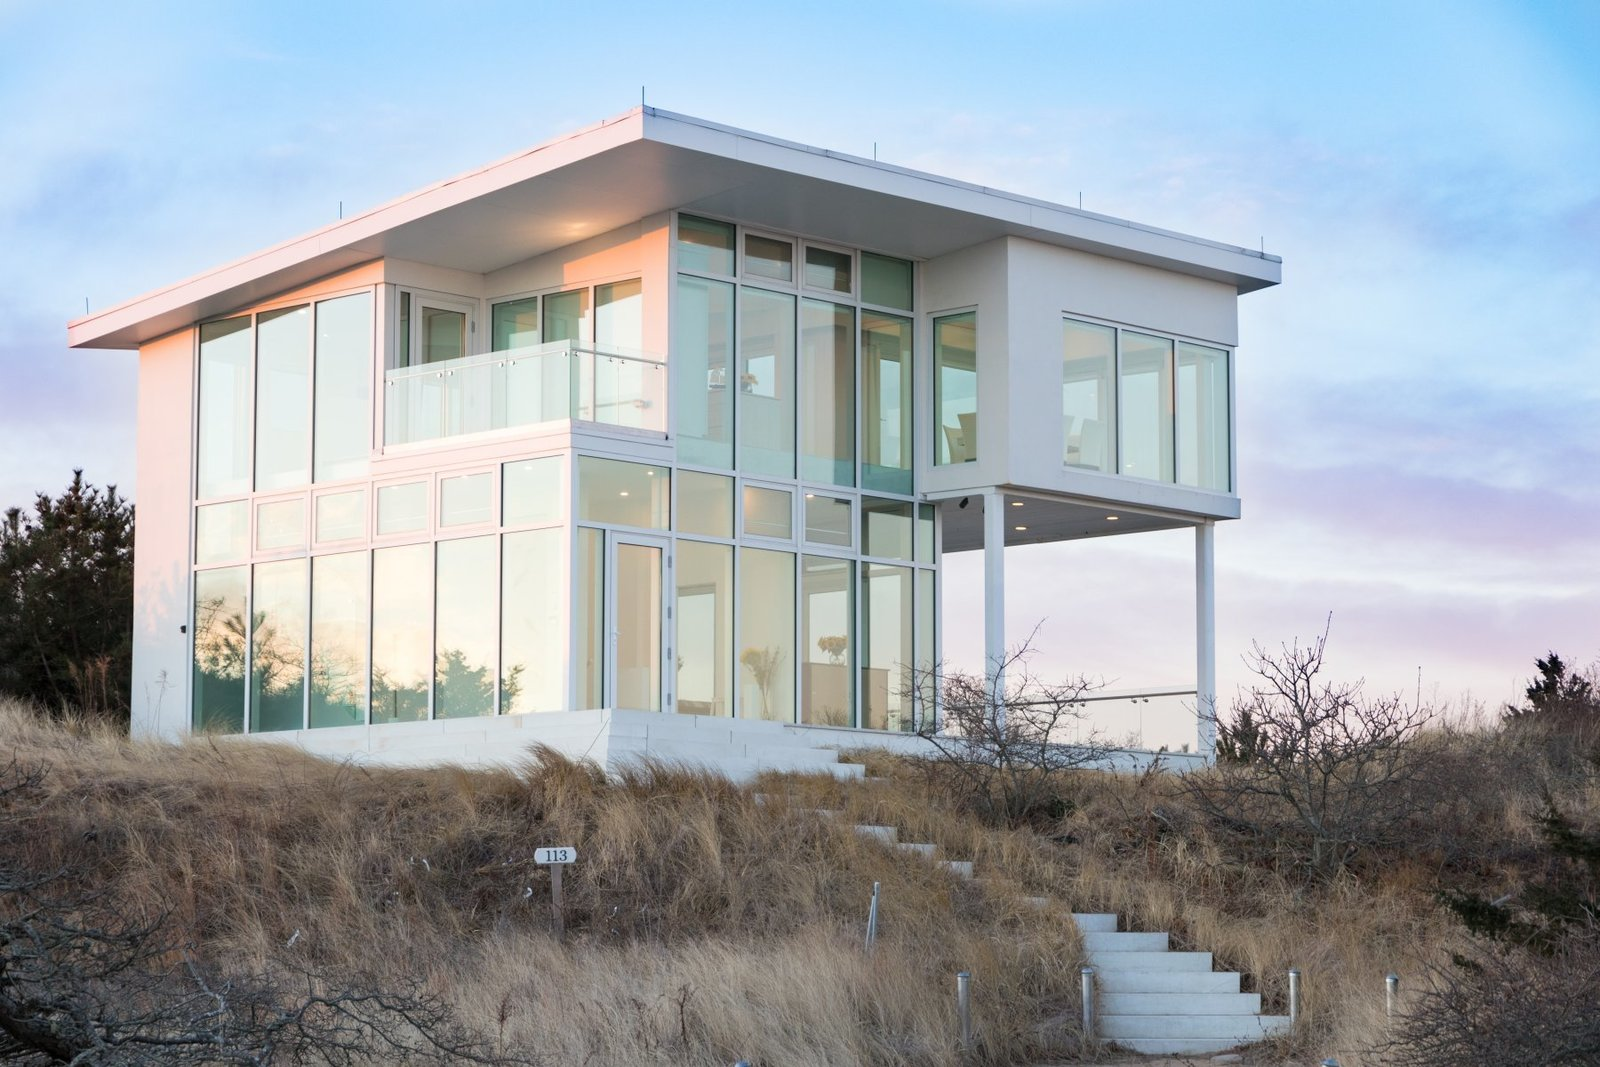 Exterior and House Building Type  Pieces from A Dreamy Cliffside Home On the Massachusetts Coast Asks $1.695M